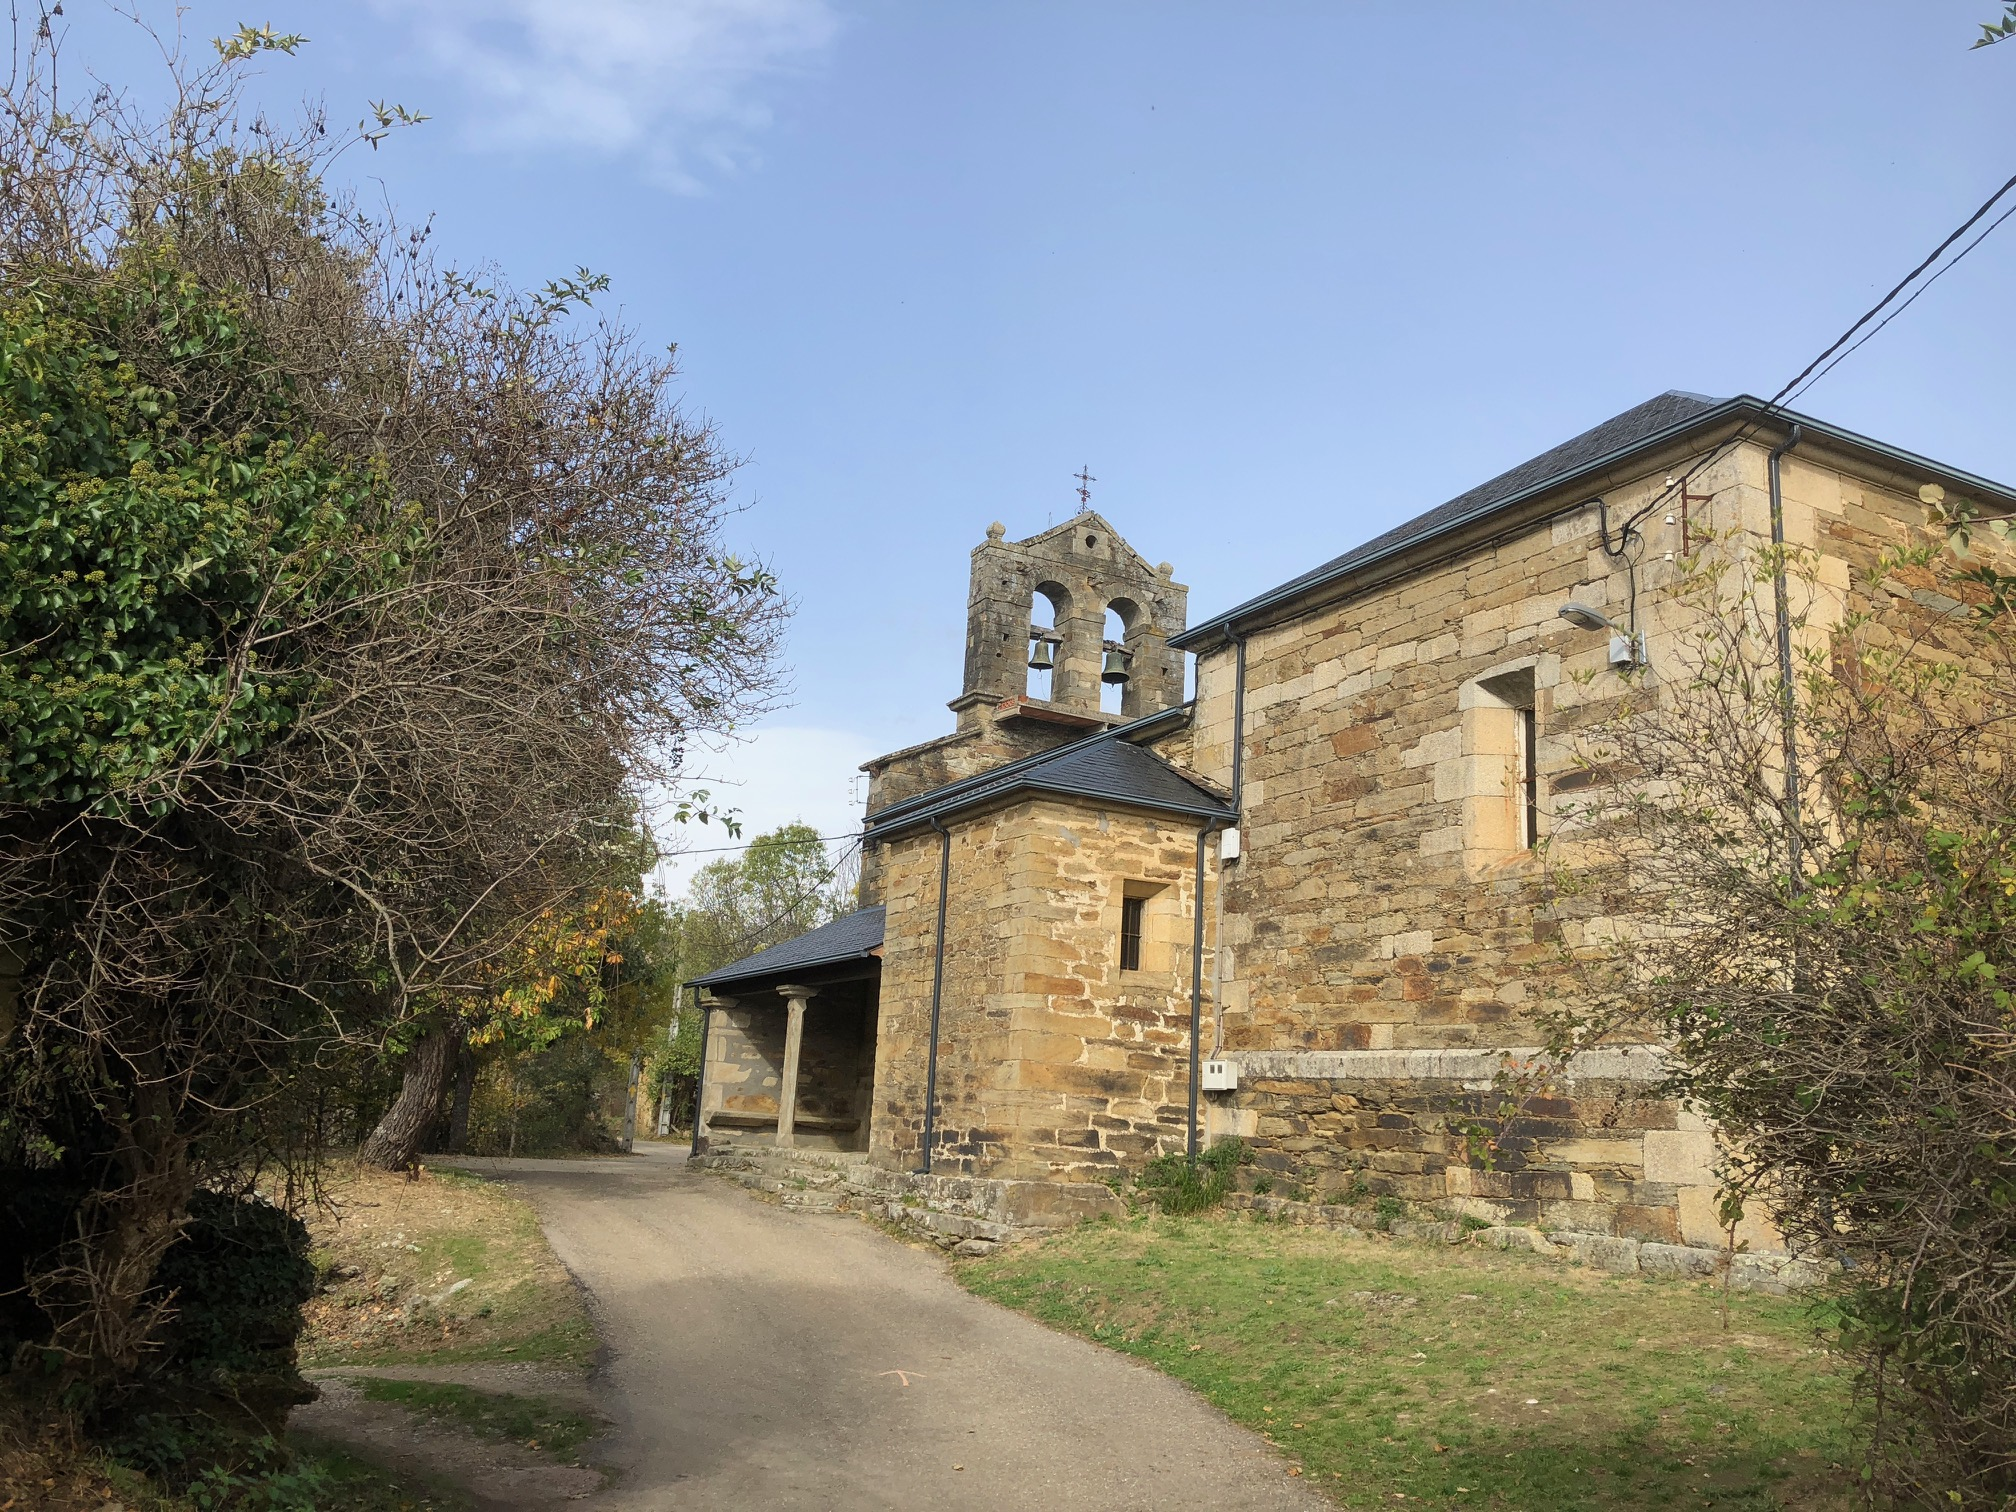 Church in one of the 5 villages